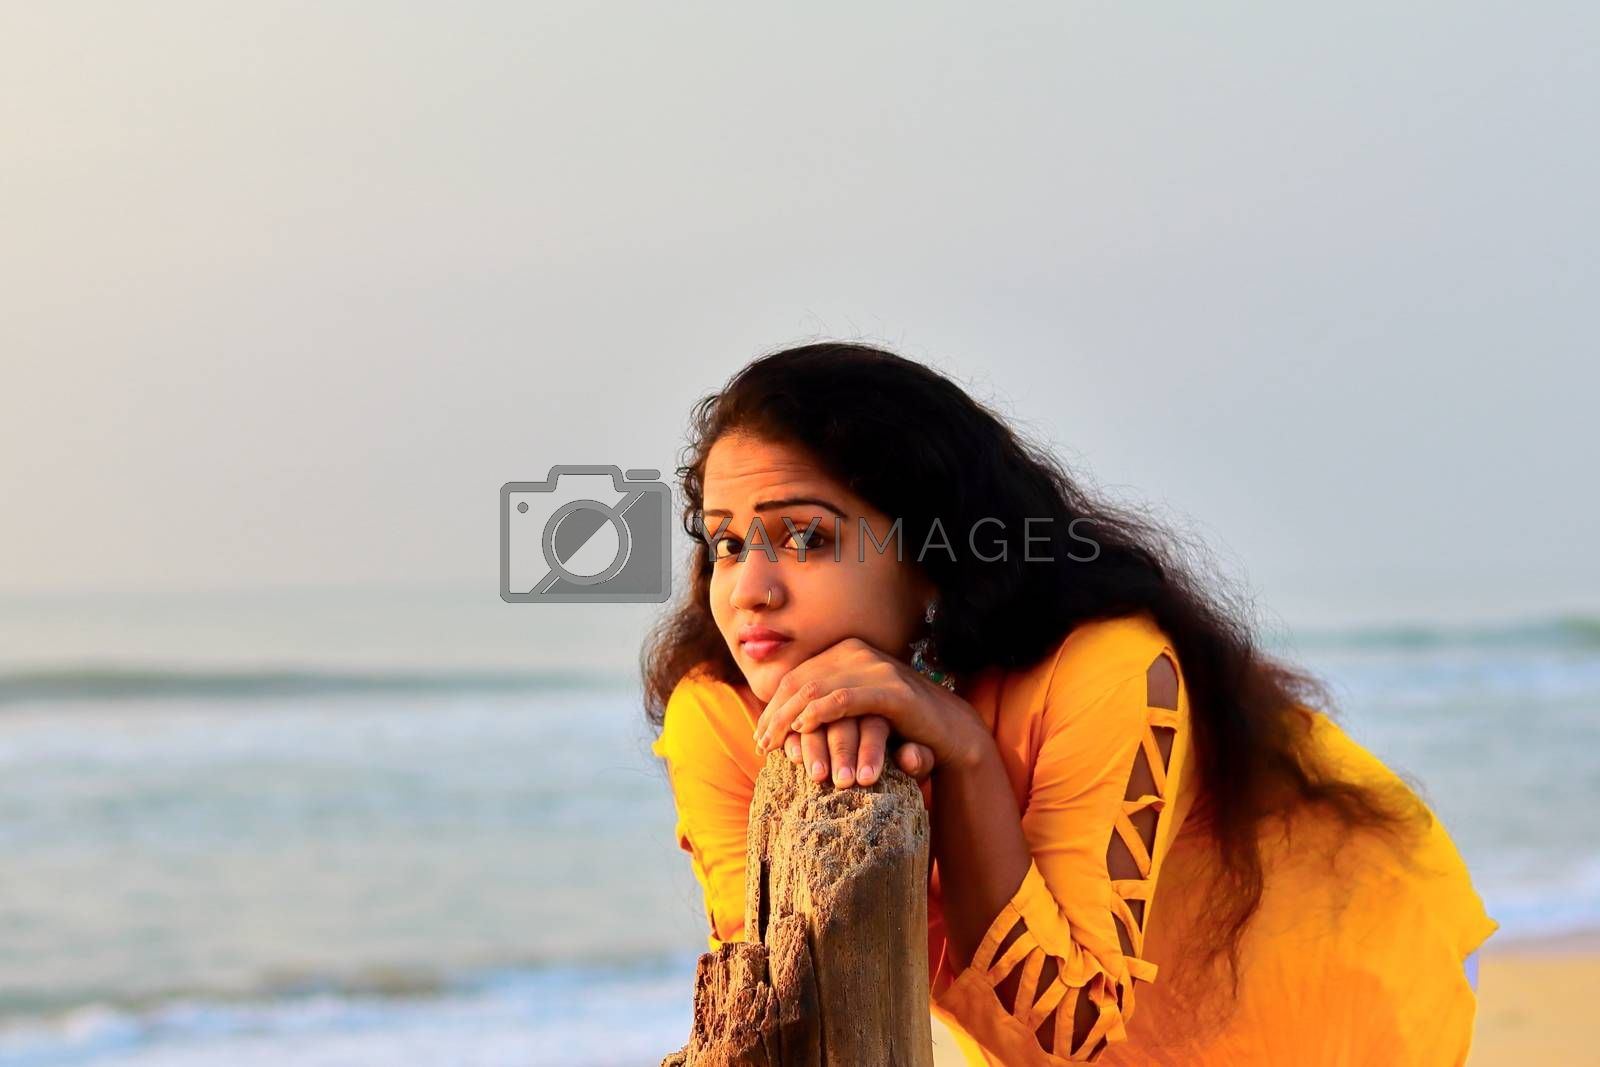 A gorgeous girl standing on the seashore with the help of dry tree wood, outdoors portrait